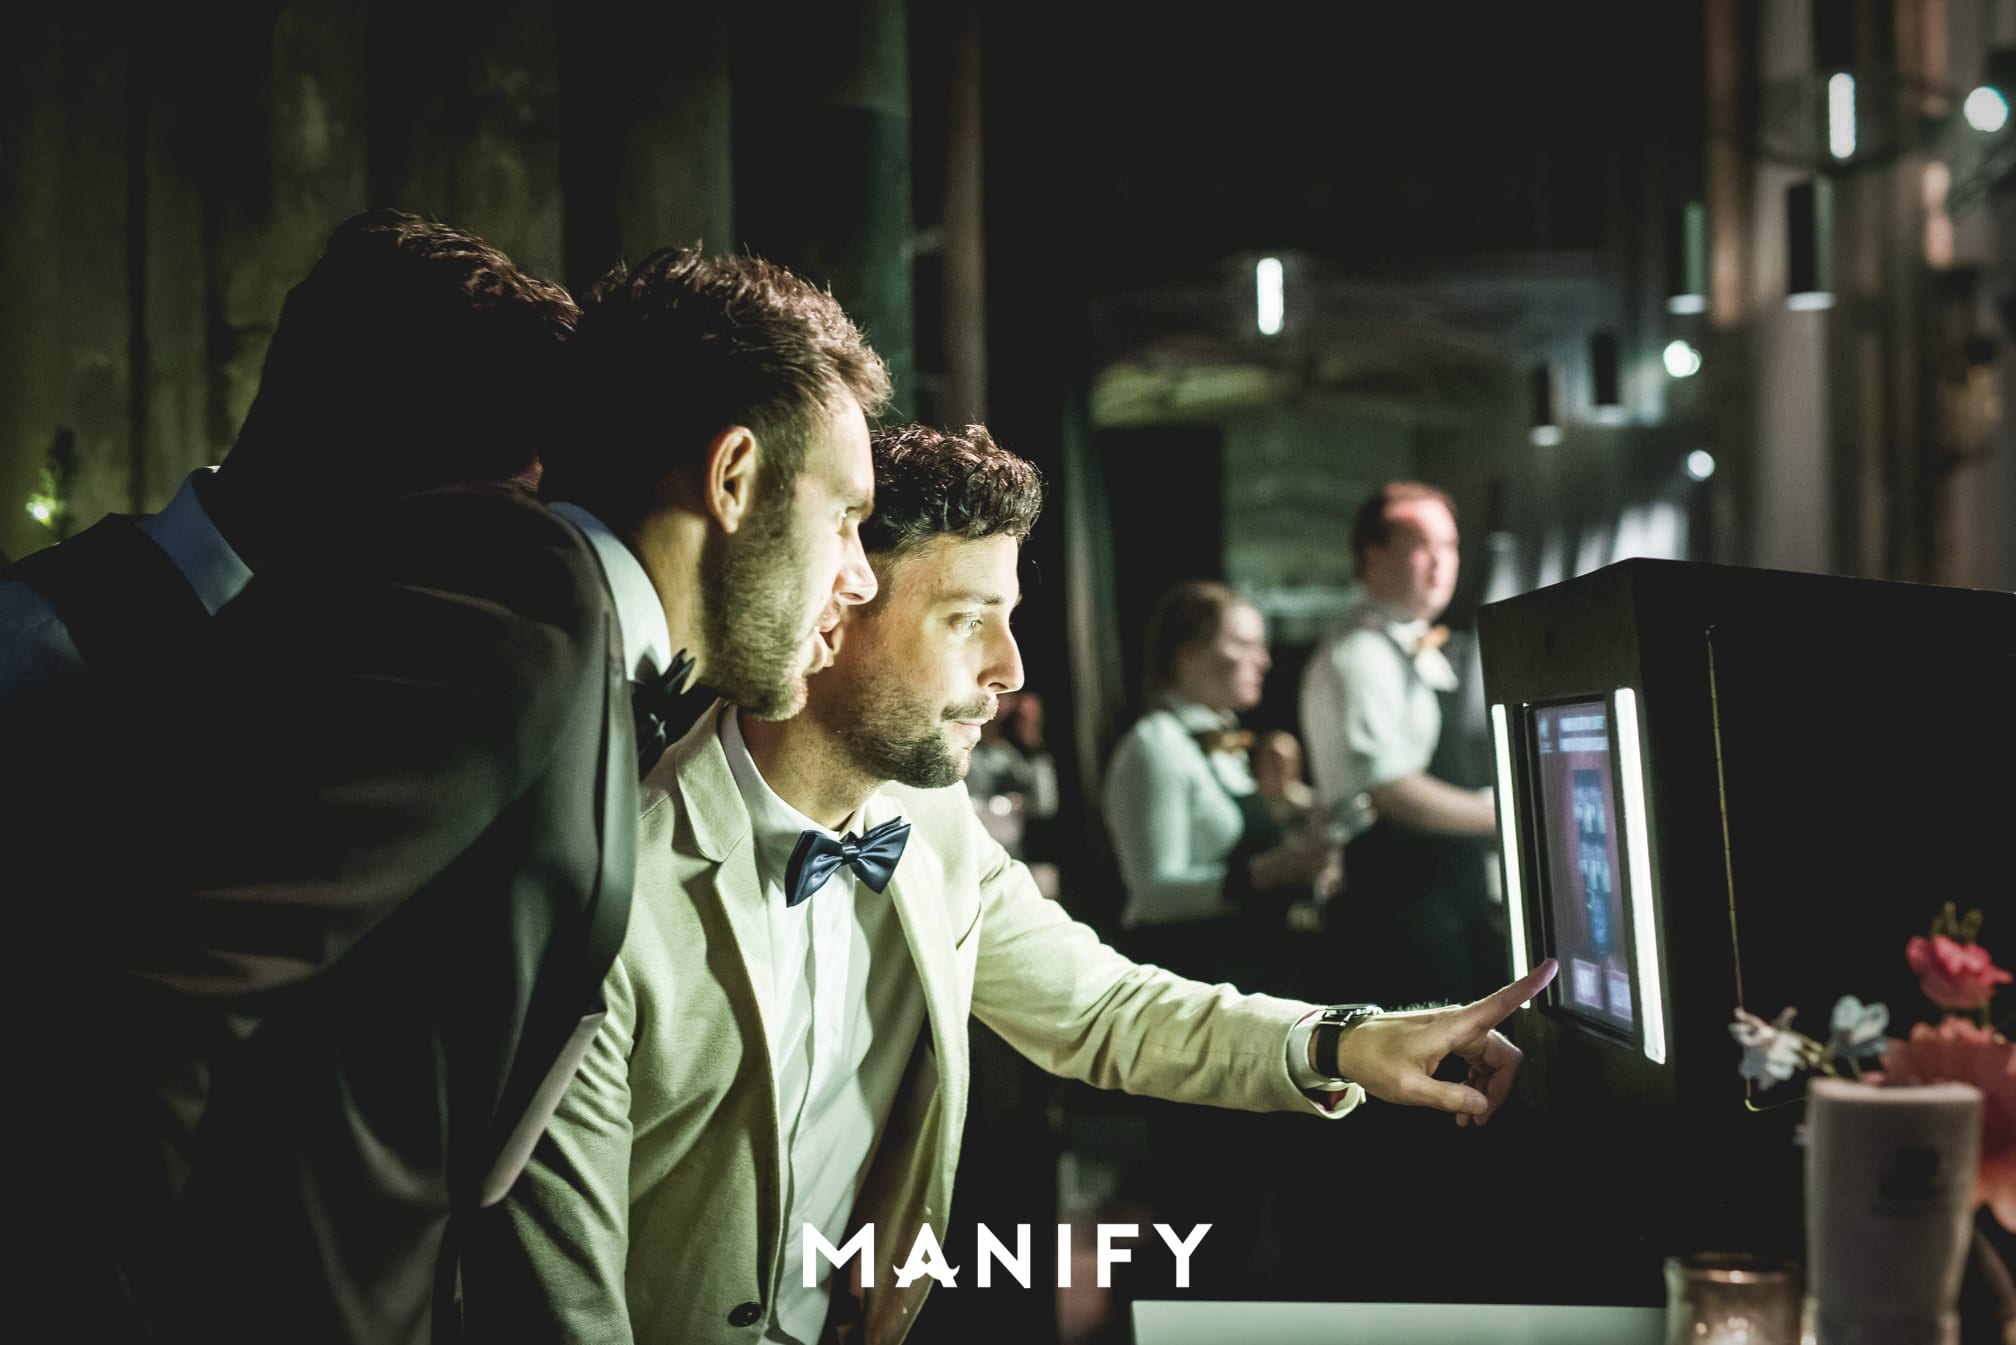 MANIFY_Out_of_office-Orangerie-06-12-19_WM-22-manify-1